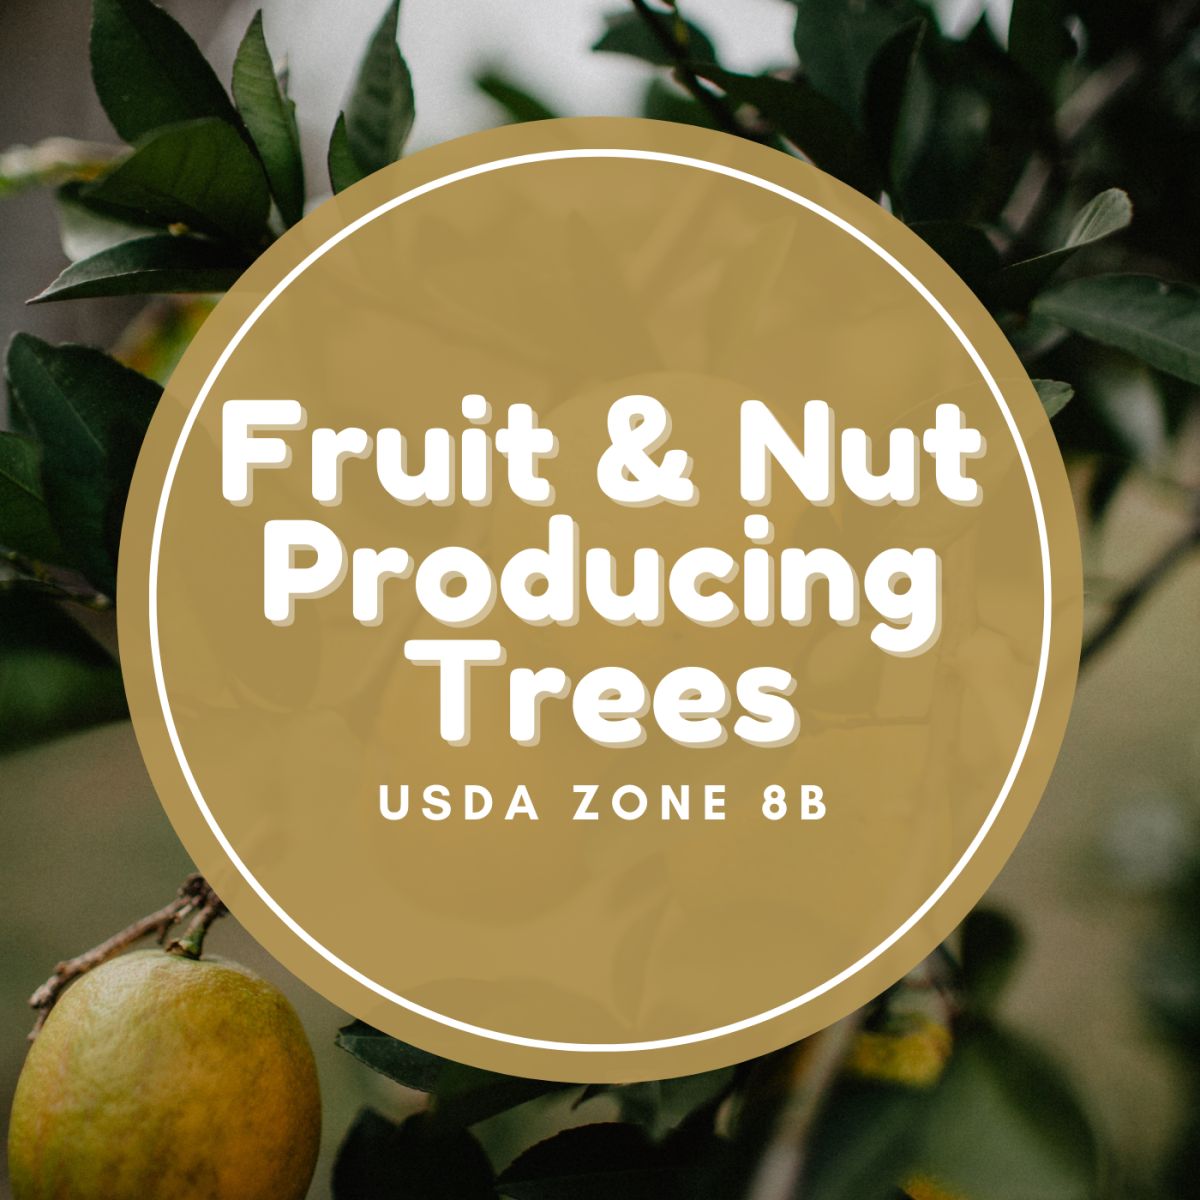 Fruit and nut producing trees.